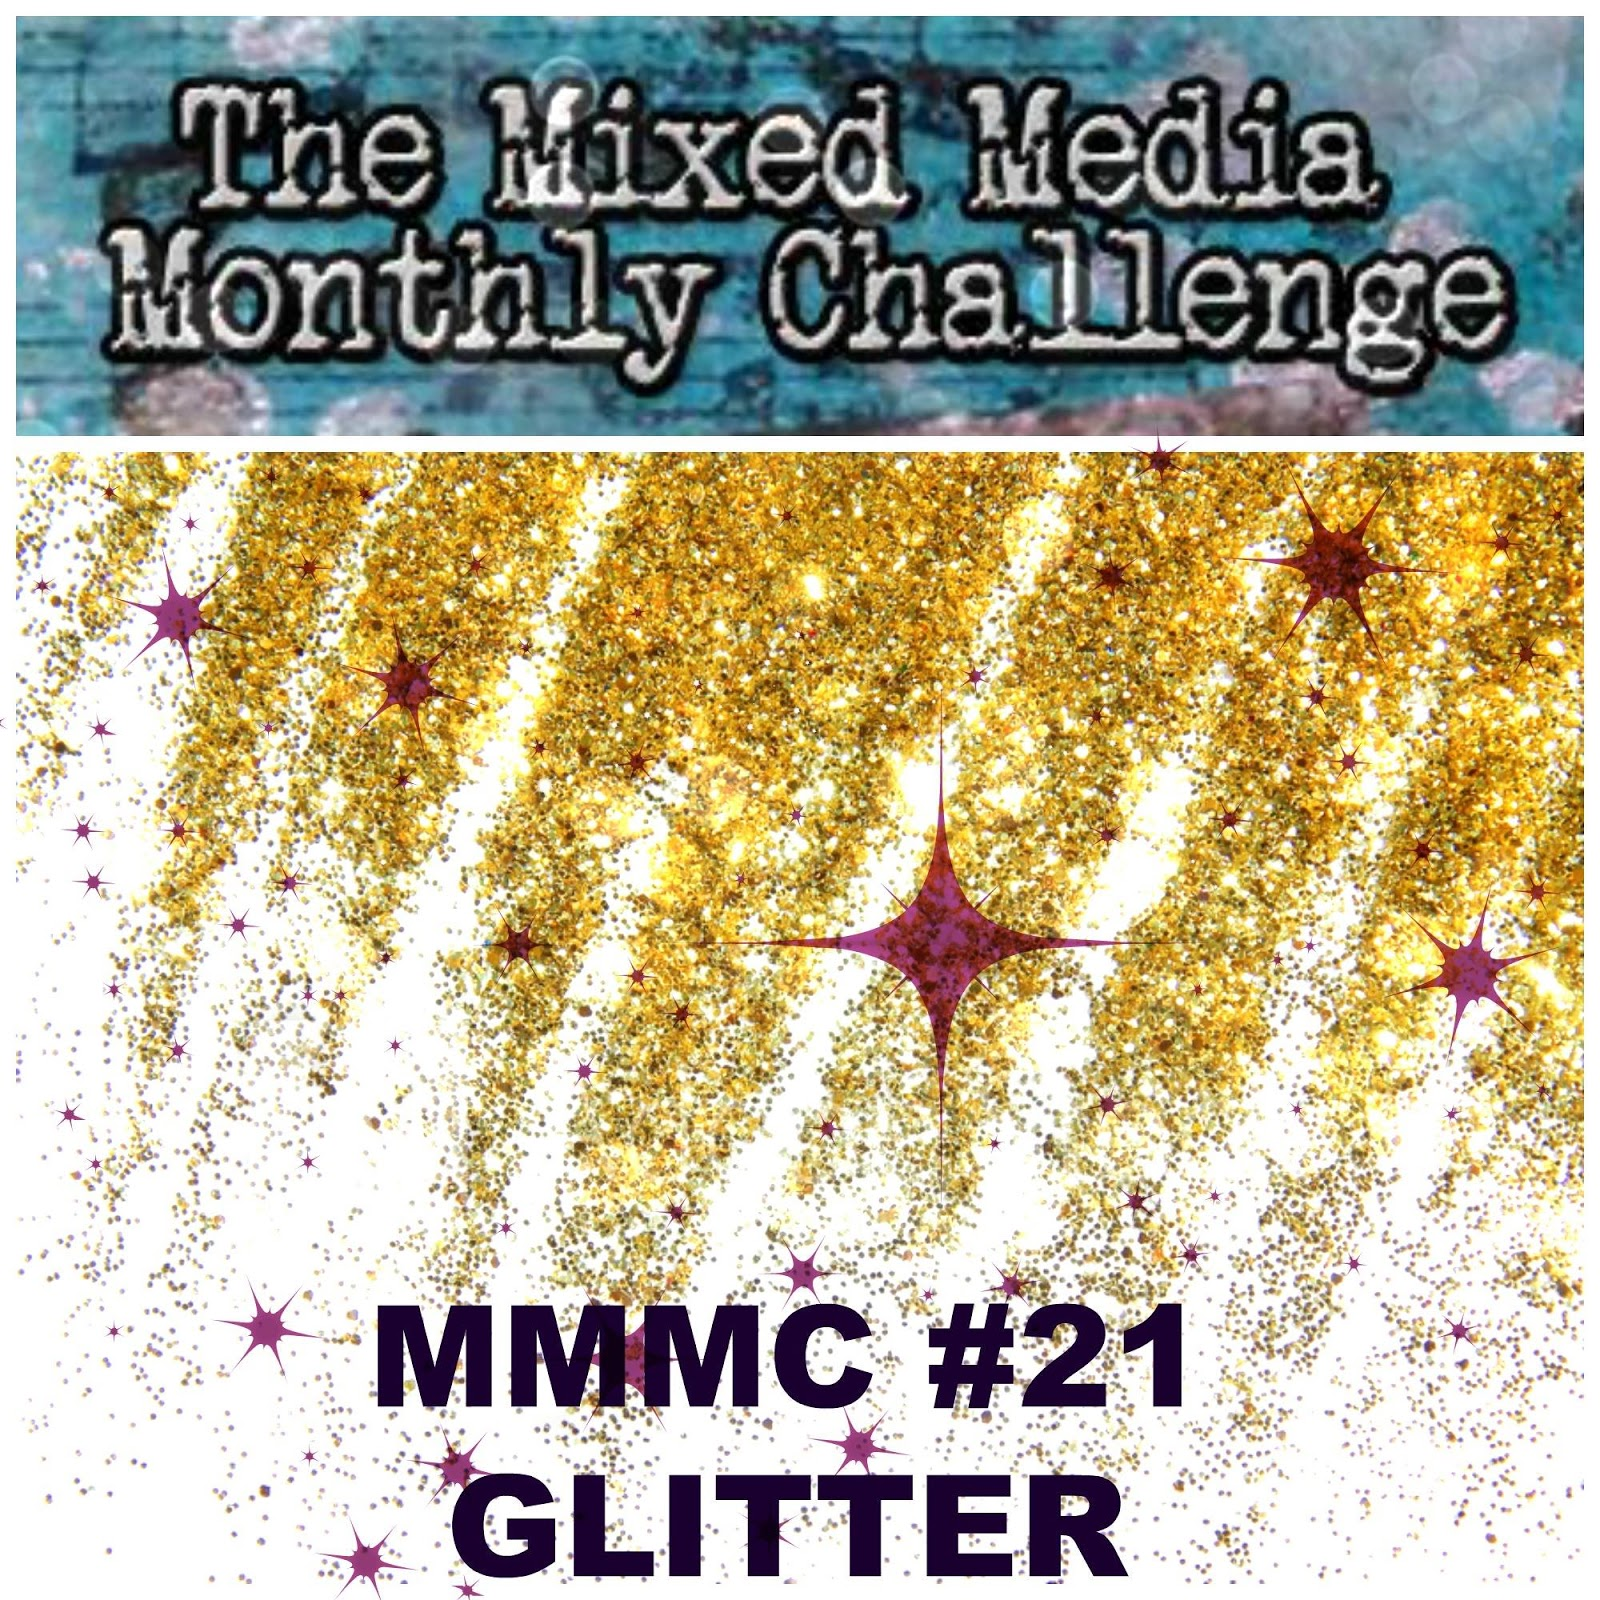 http://mixedmediamc.blogspot.ie/2016/02/mixed-media-monthly-challenge-21-glitter.html